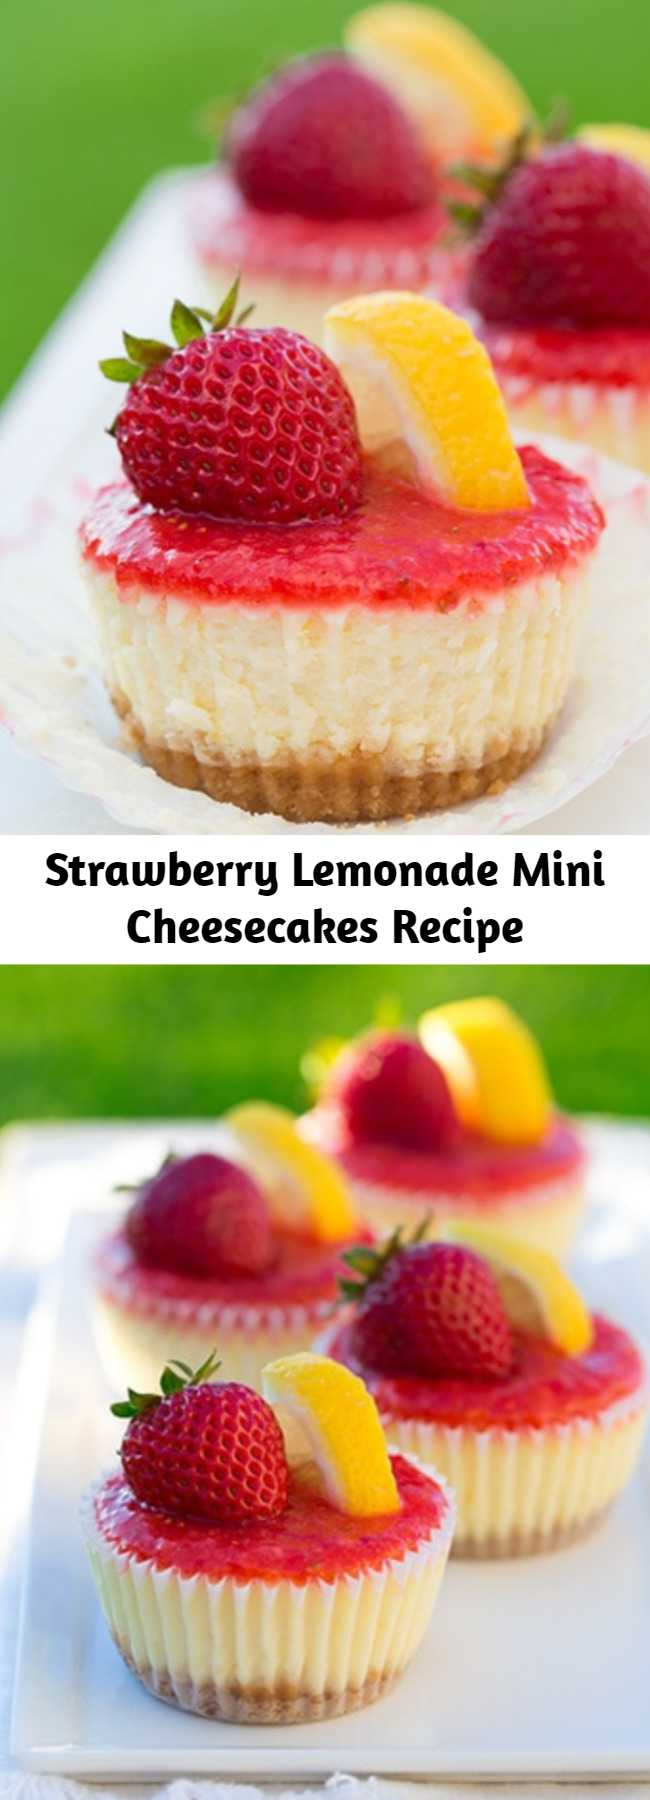 Strawberry Lemonade Mini Cheesecakes Recipe - Individual cheesecakes with the same irresistible refreshing flavor as a glass of strawberry lemonade.